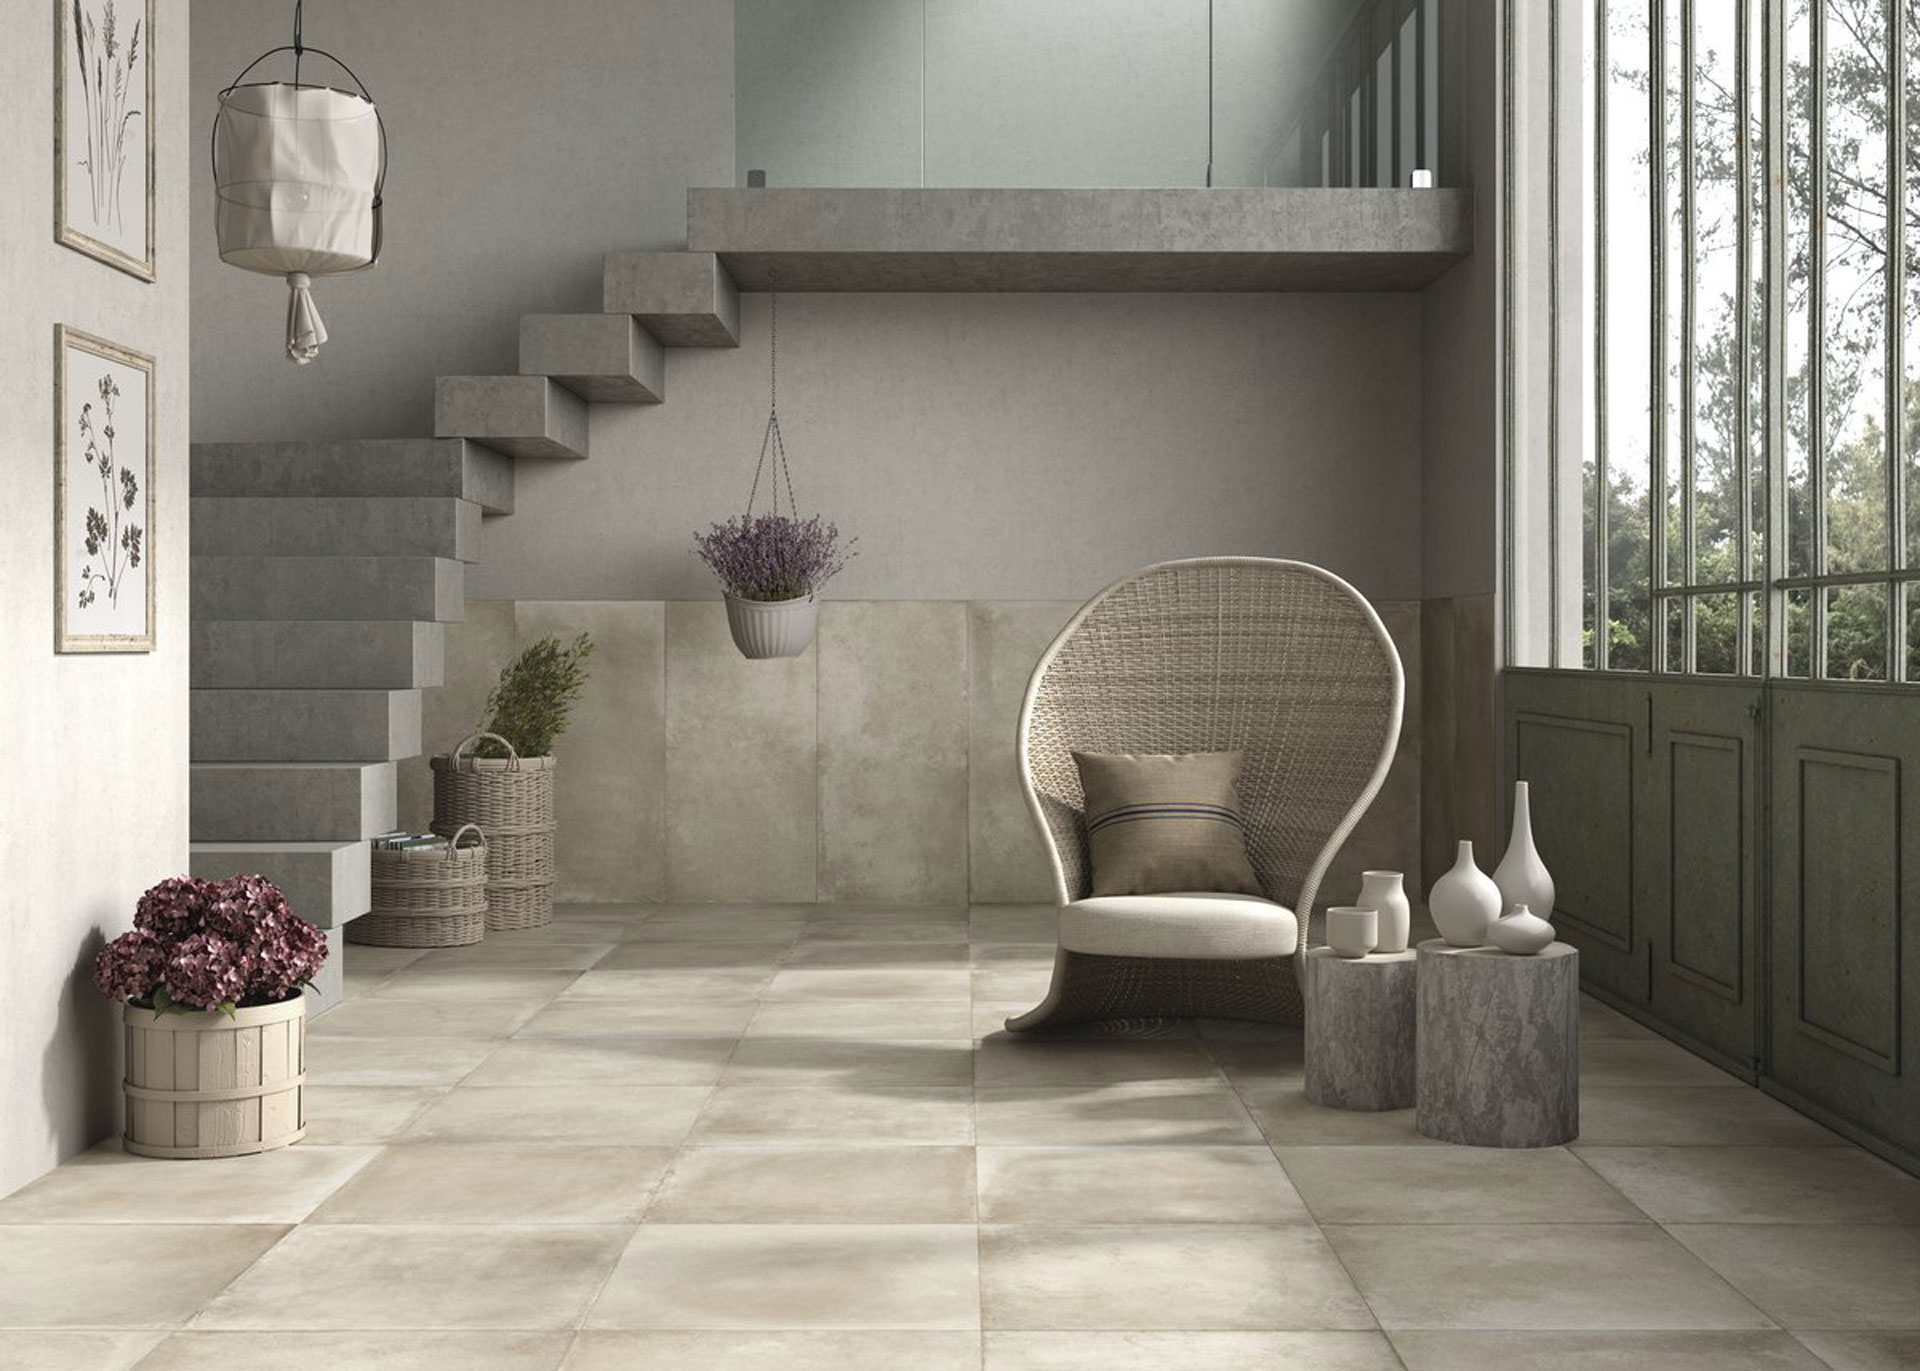 Porcelain stoneware: a traditional way of renovating